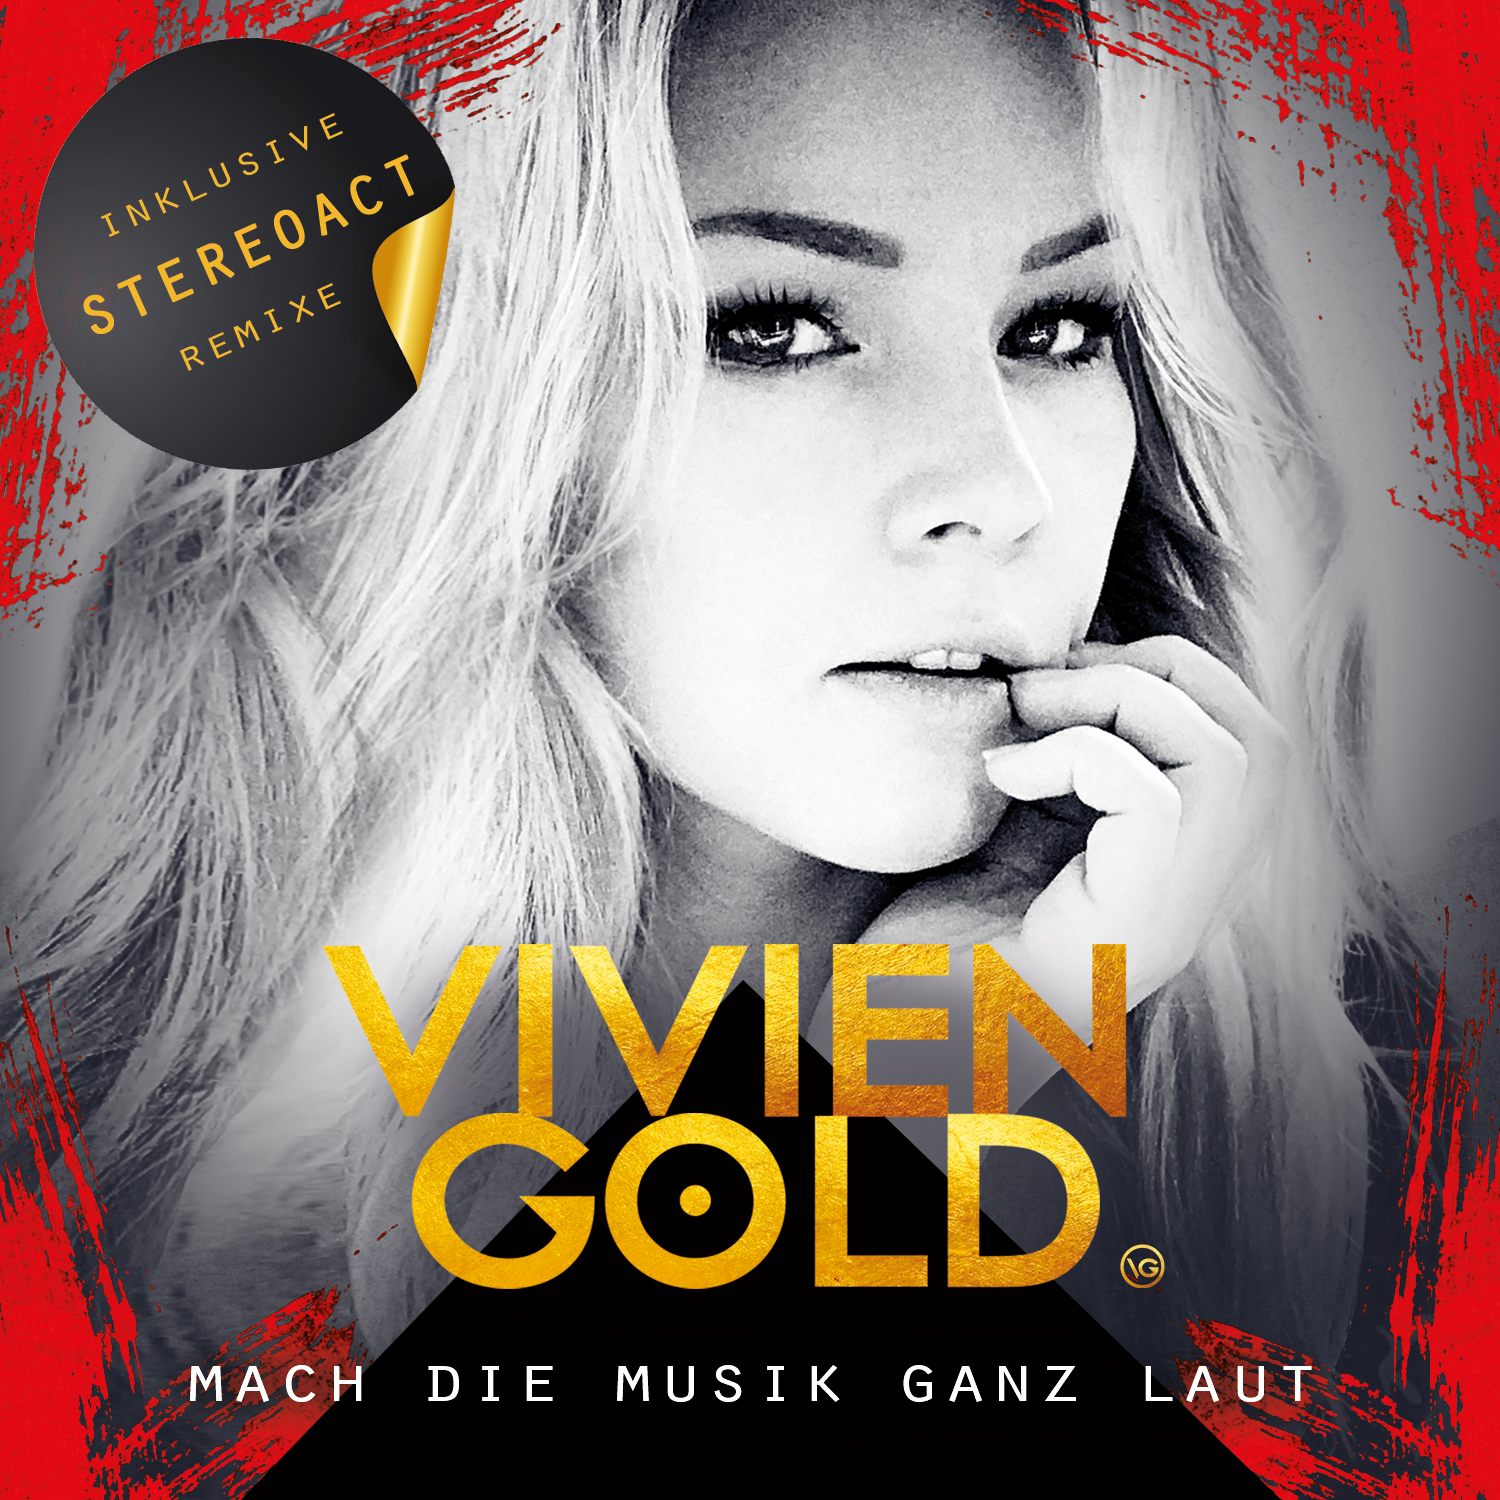 Vivien Gold | Single Cover Mach die Musik ganz laut